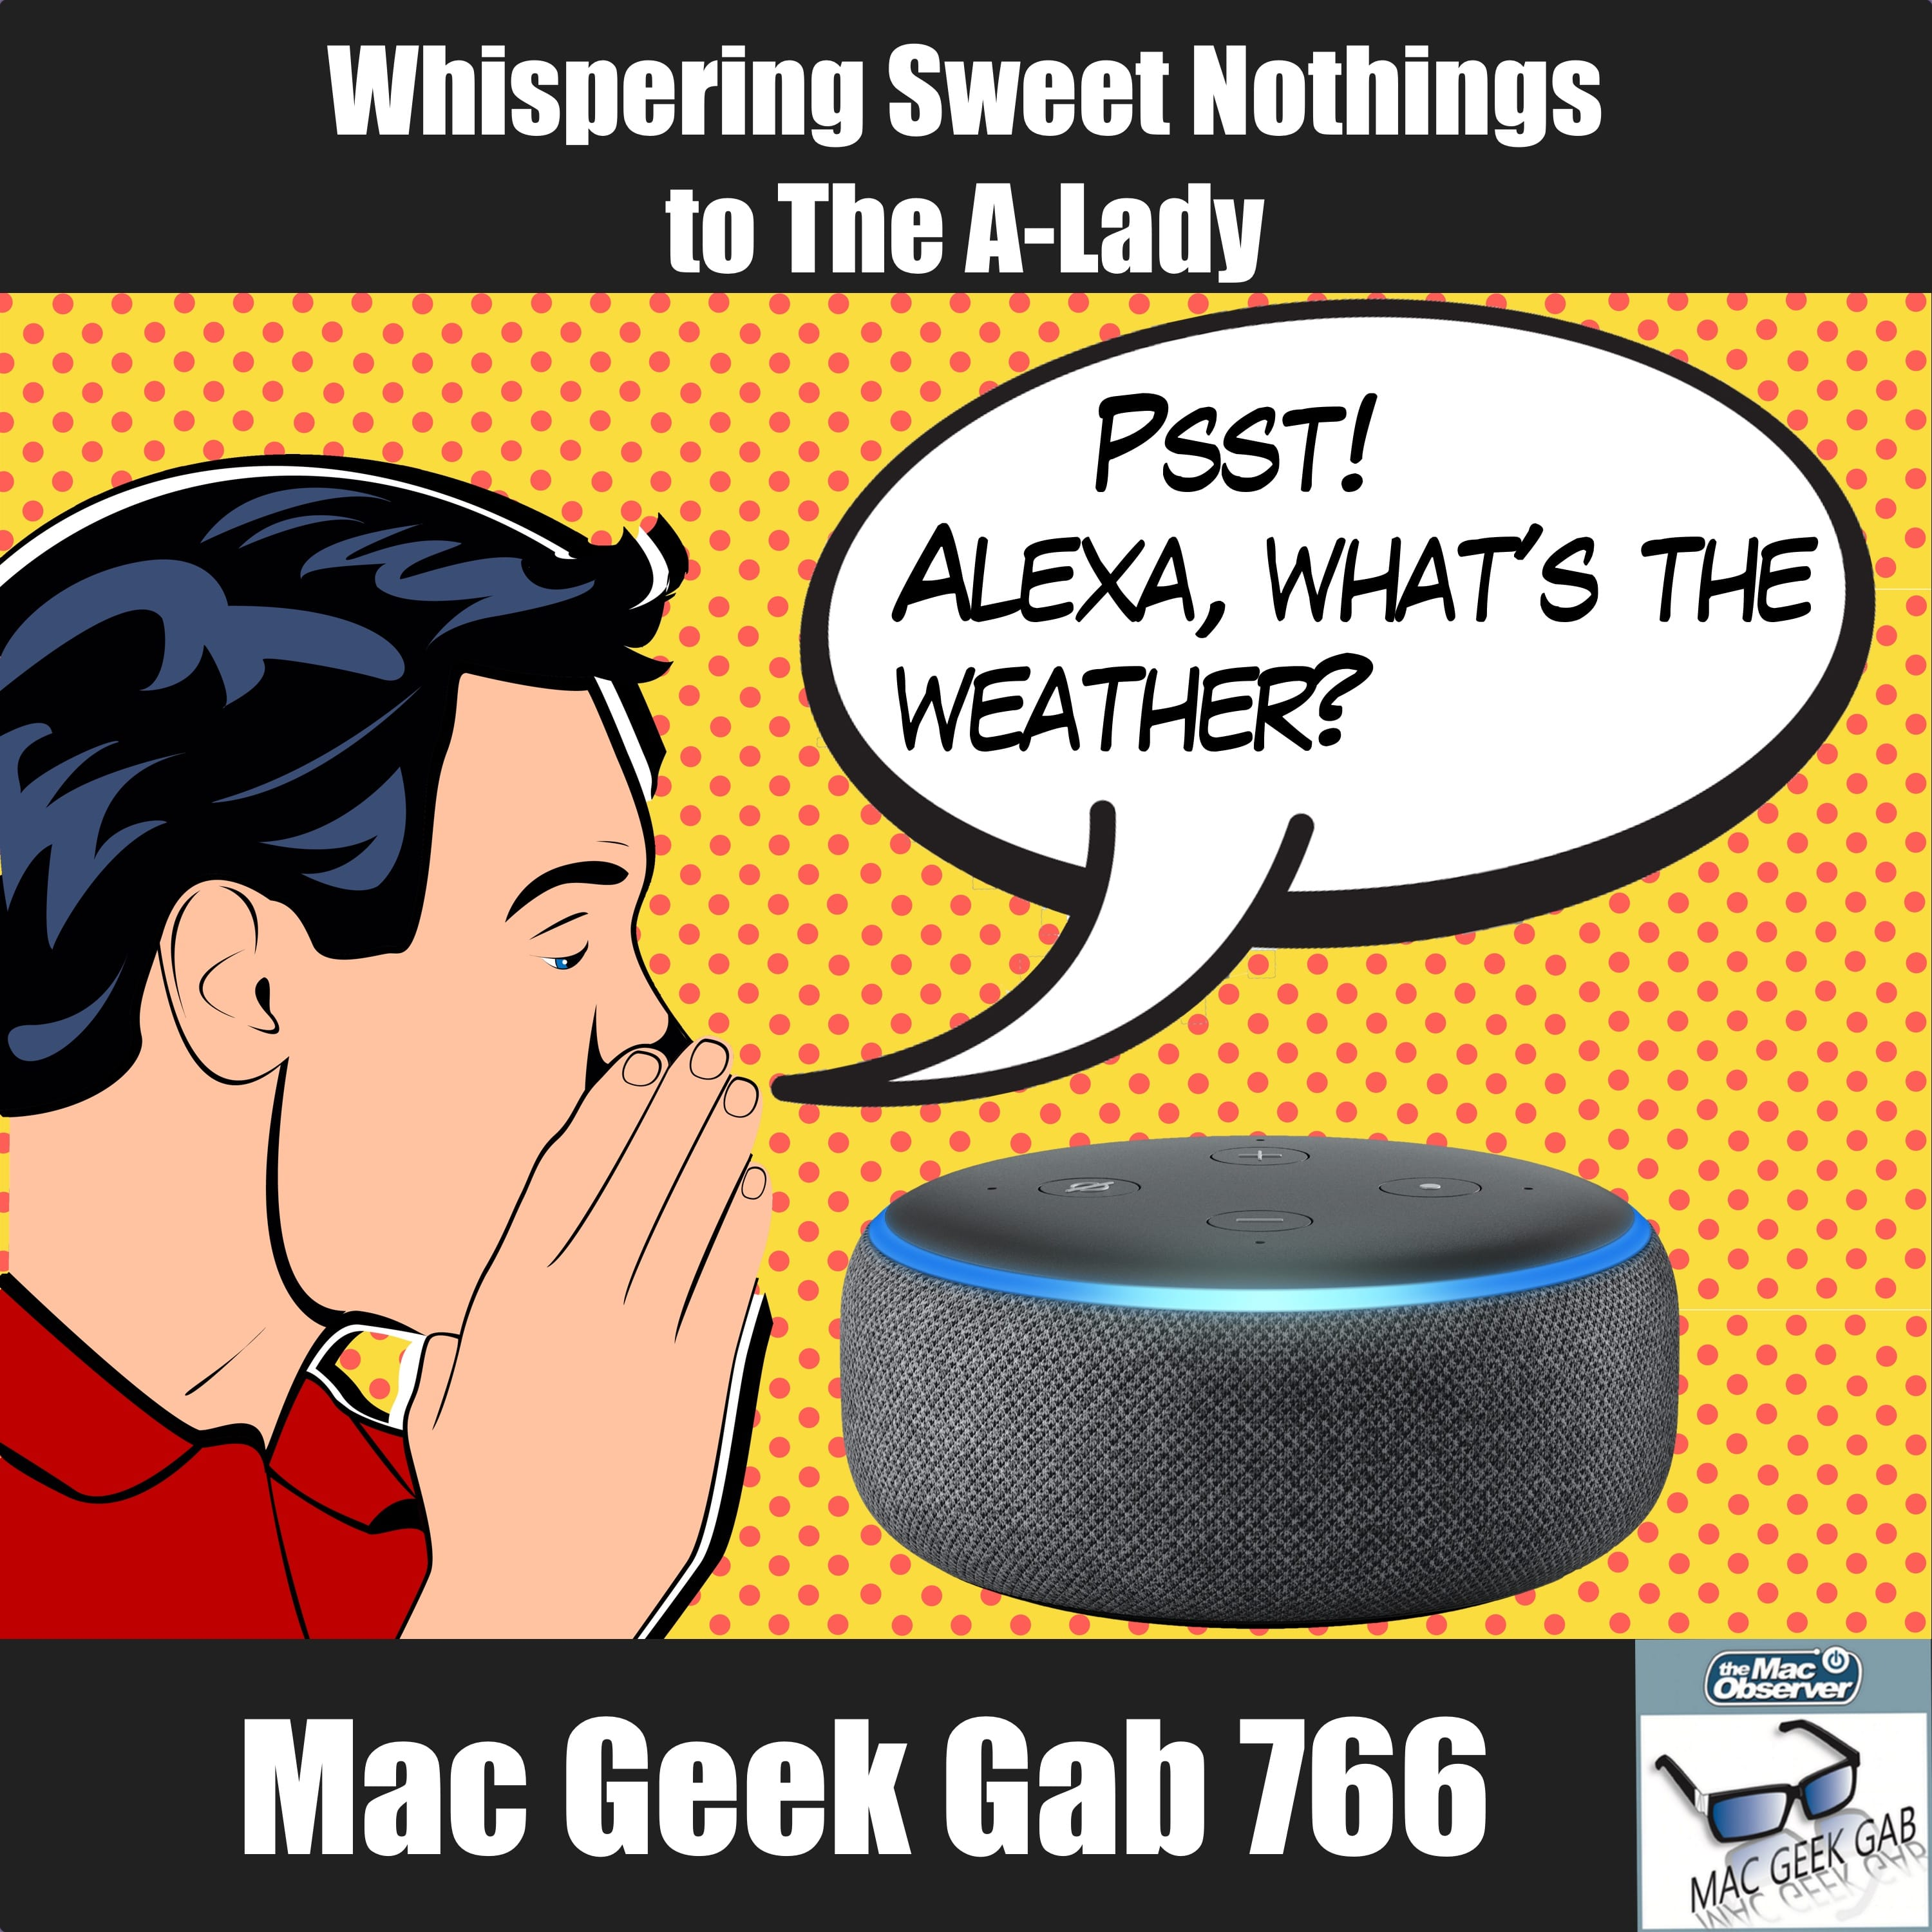 Whispering Sweet Nothings at The A-Lady – Mac Geek Gab